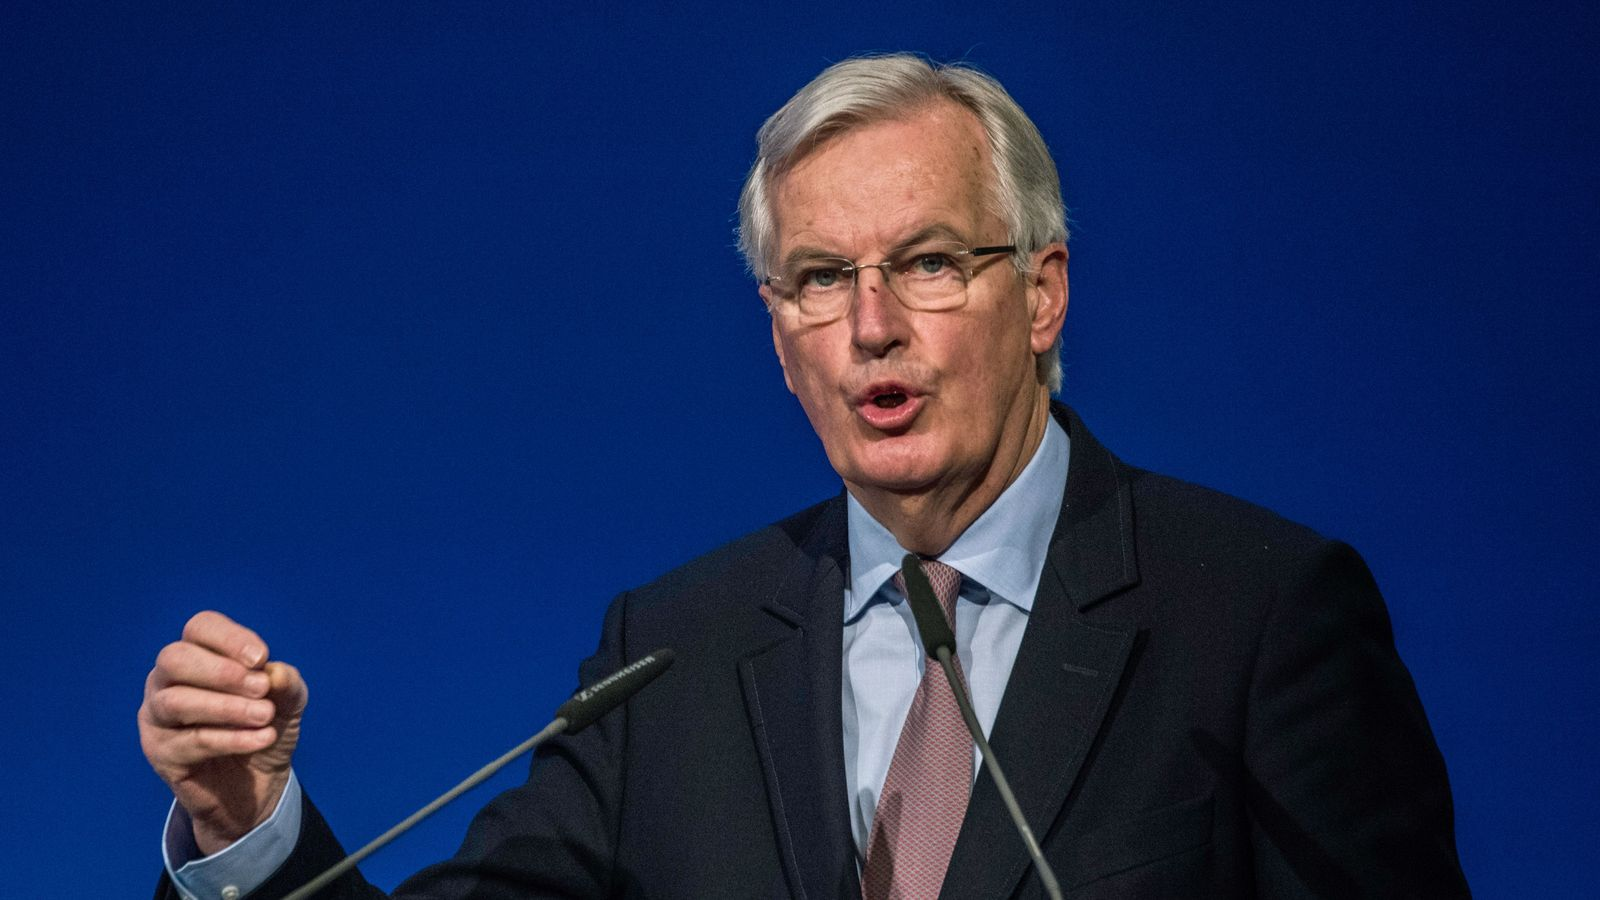 Senior Brexiteers absent from meeting with EU's chief negotiator